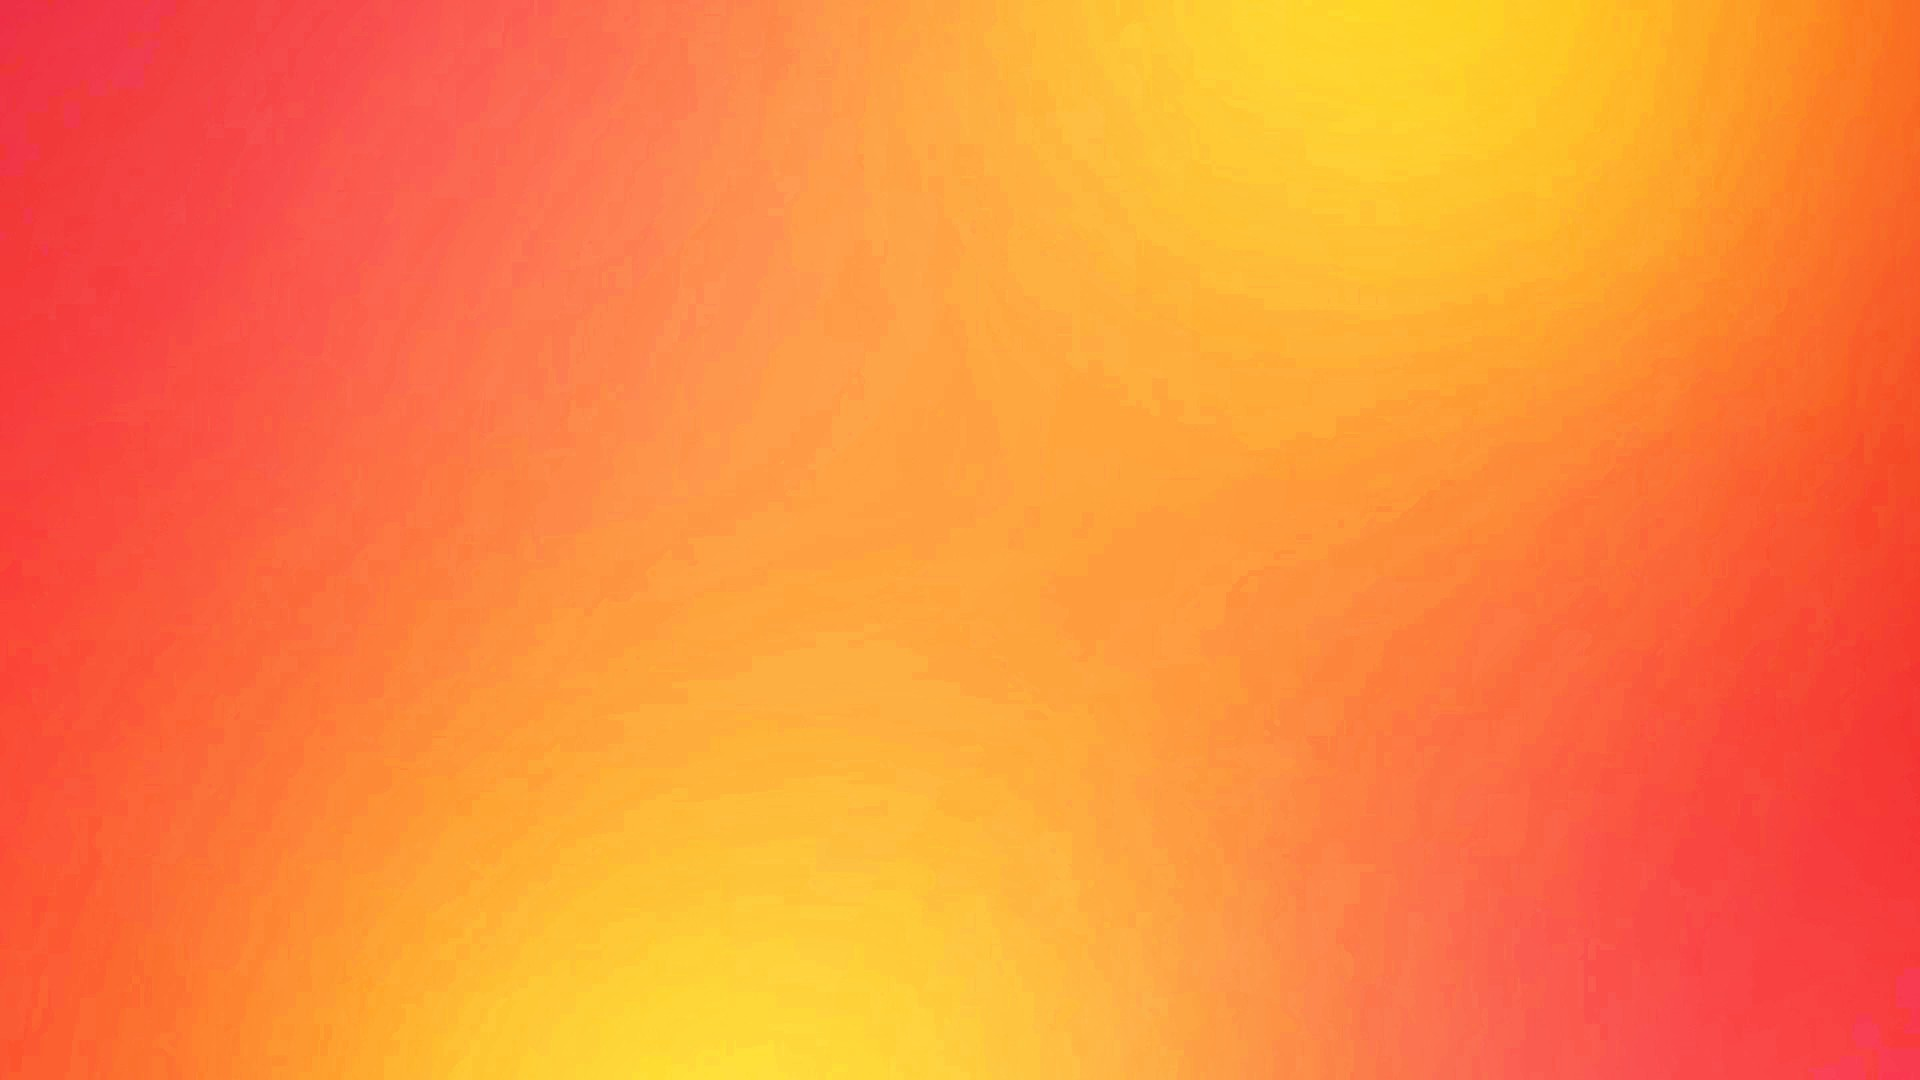 Pink And Yellow Gradient Abstract Wallpaper imageYellow Gradient